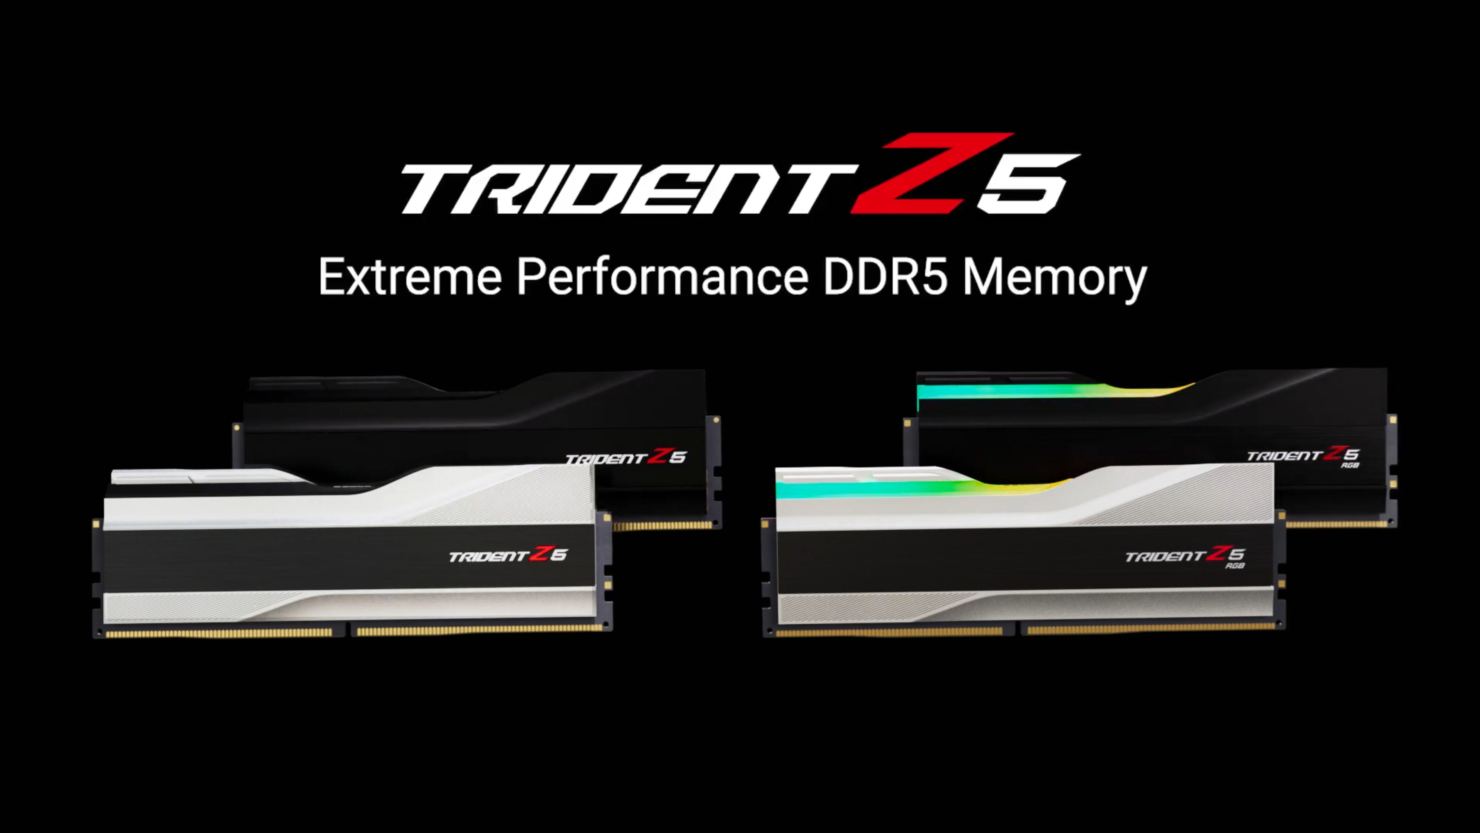 G.Skill Unveils Its Flagship Trident Z5 RGB DDR5 Memory Series – Up To DDR5-6400 CL36 Using Samsung DRAM, New Dual-Texture Heatspreader